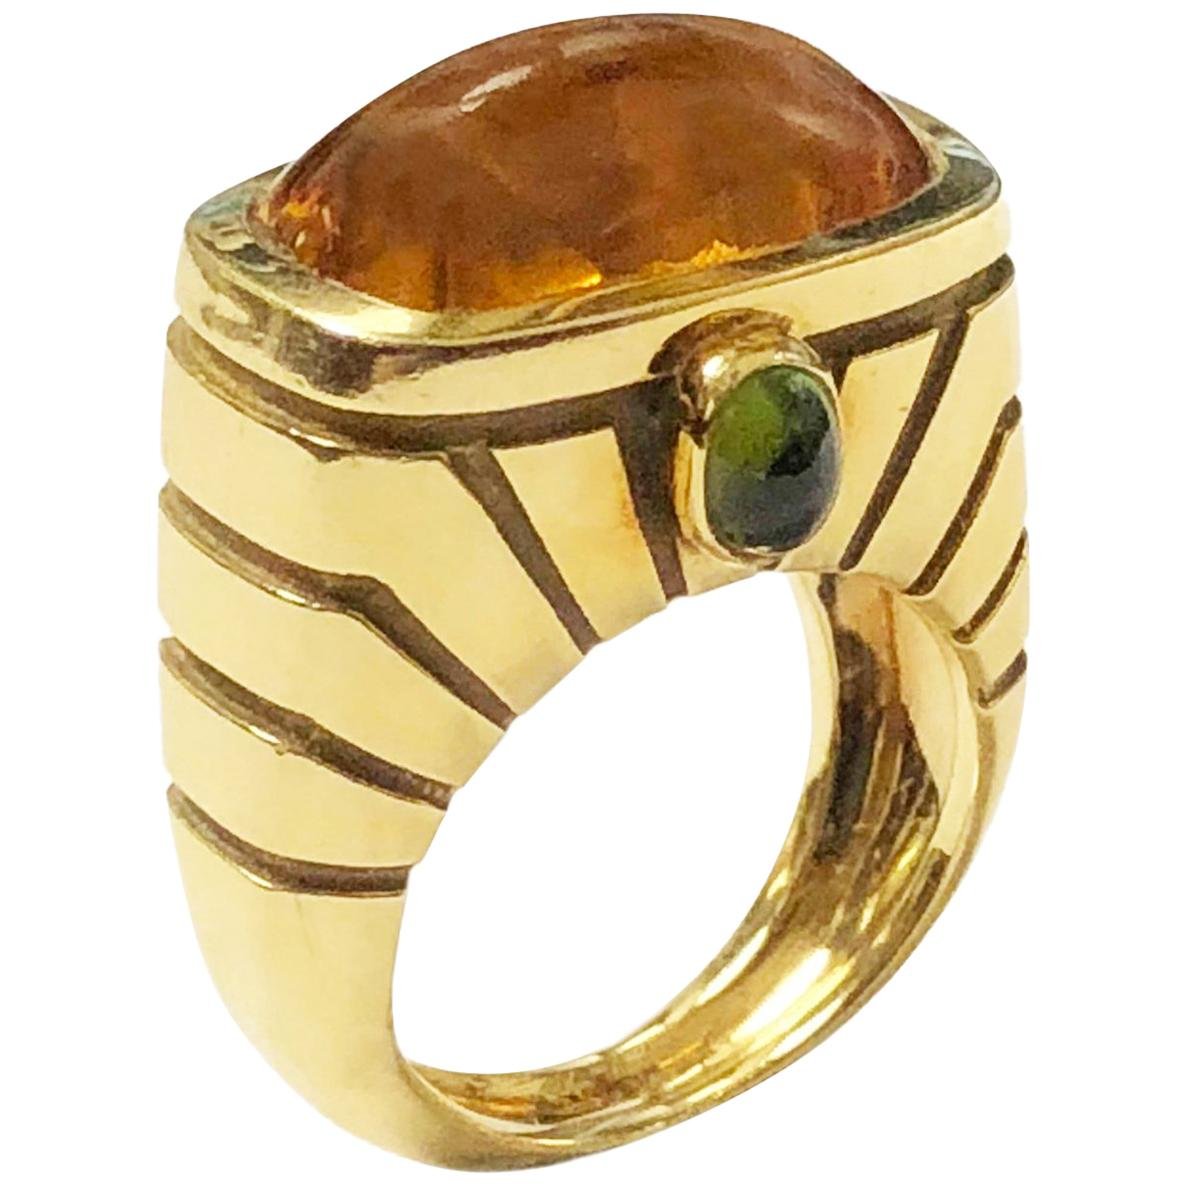 Van Cleef & Arpels Yellow Gold and Topaz Ring